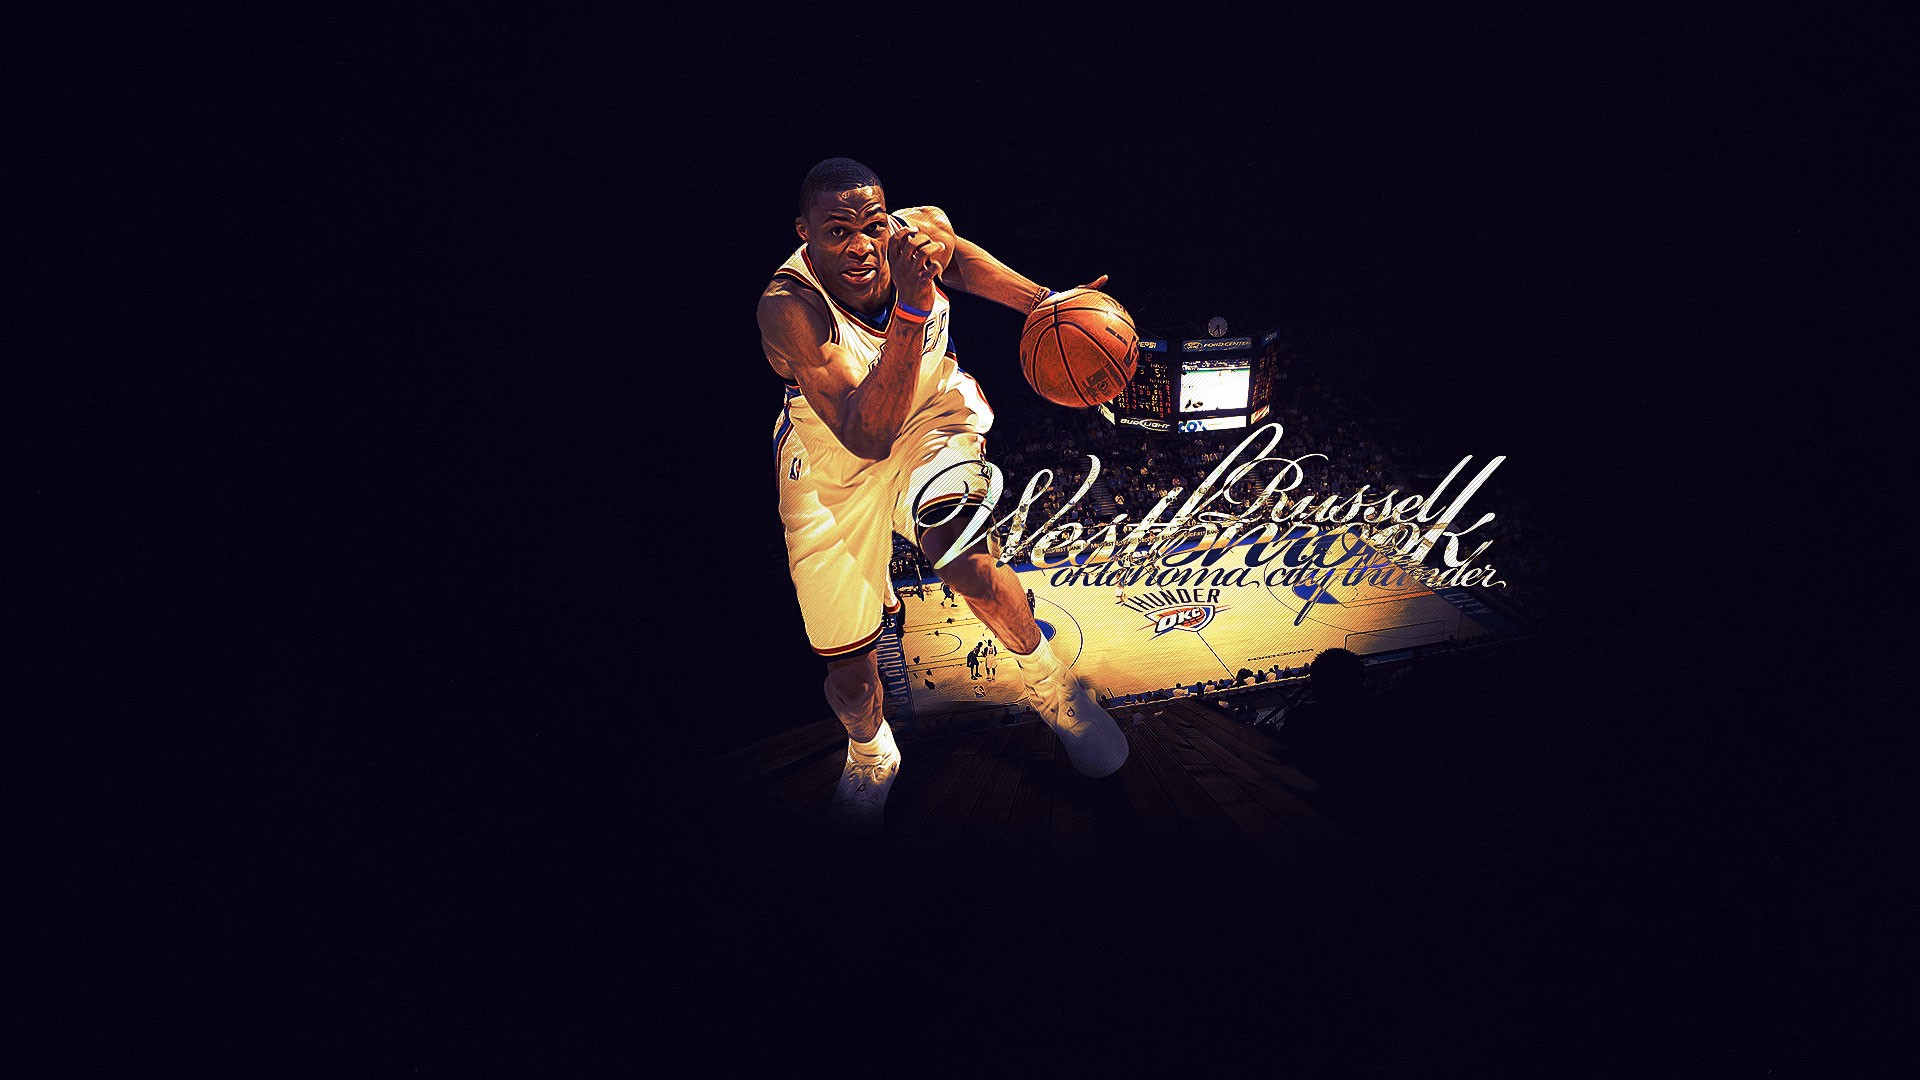 Nba Wallpapers HD, Desktop Backgrounds, Images and Pictures 1600 ...